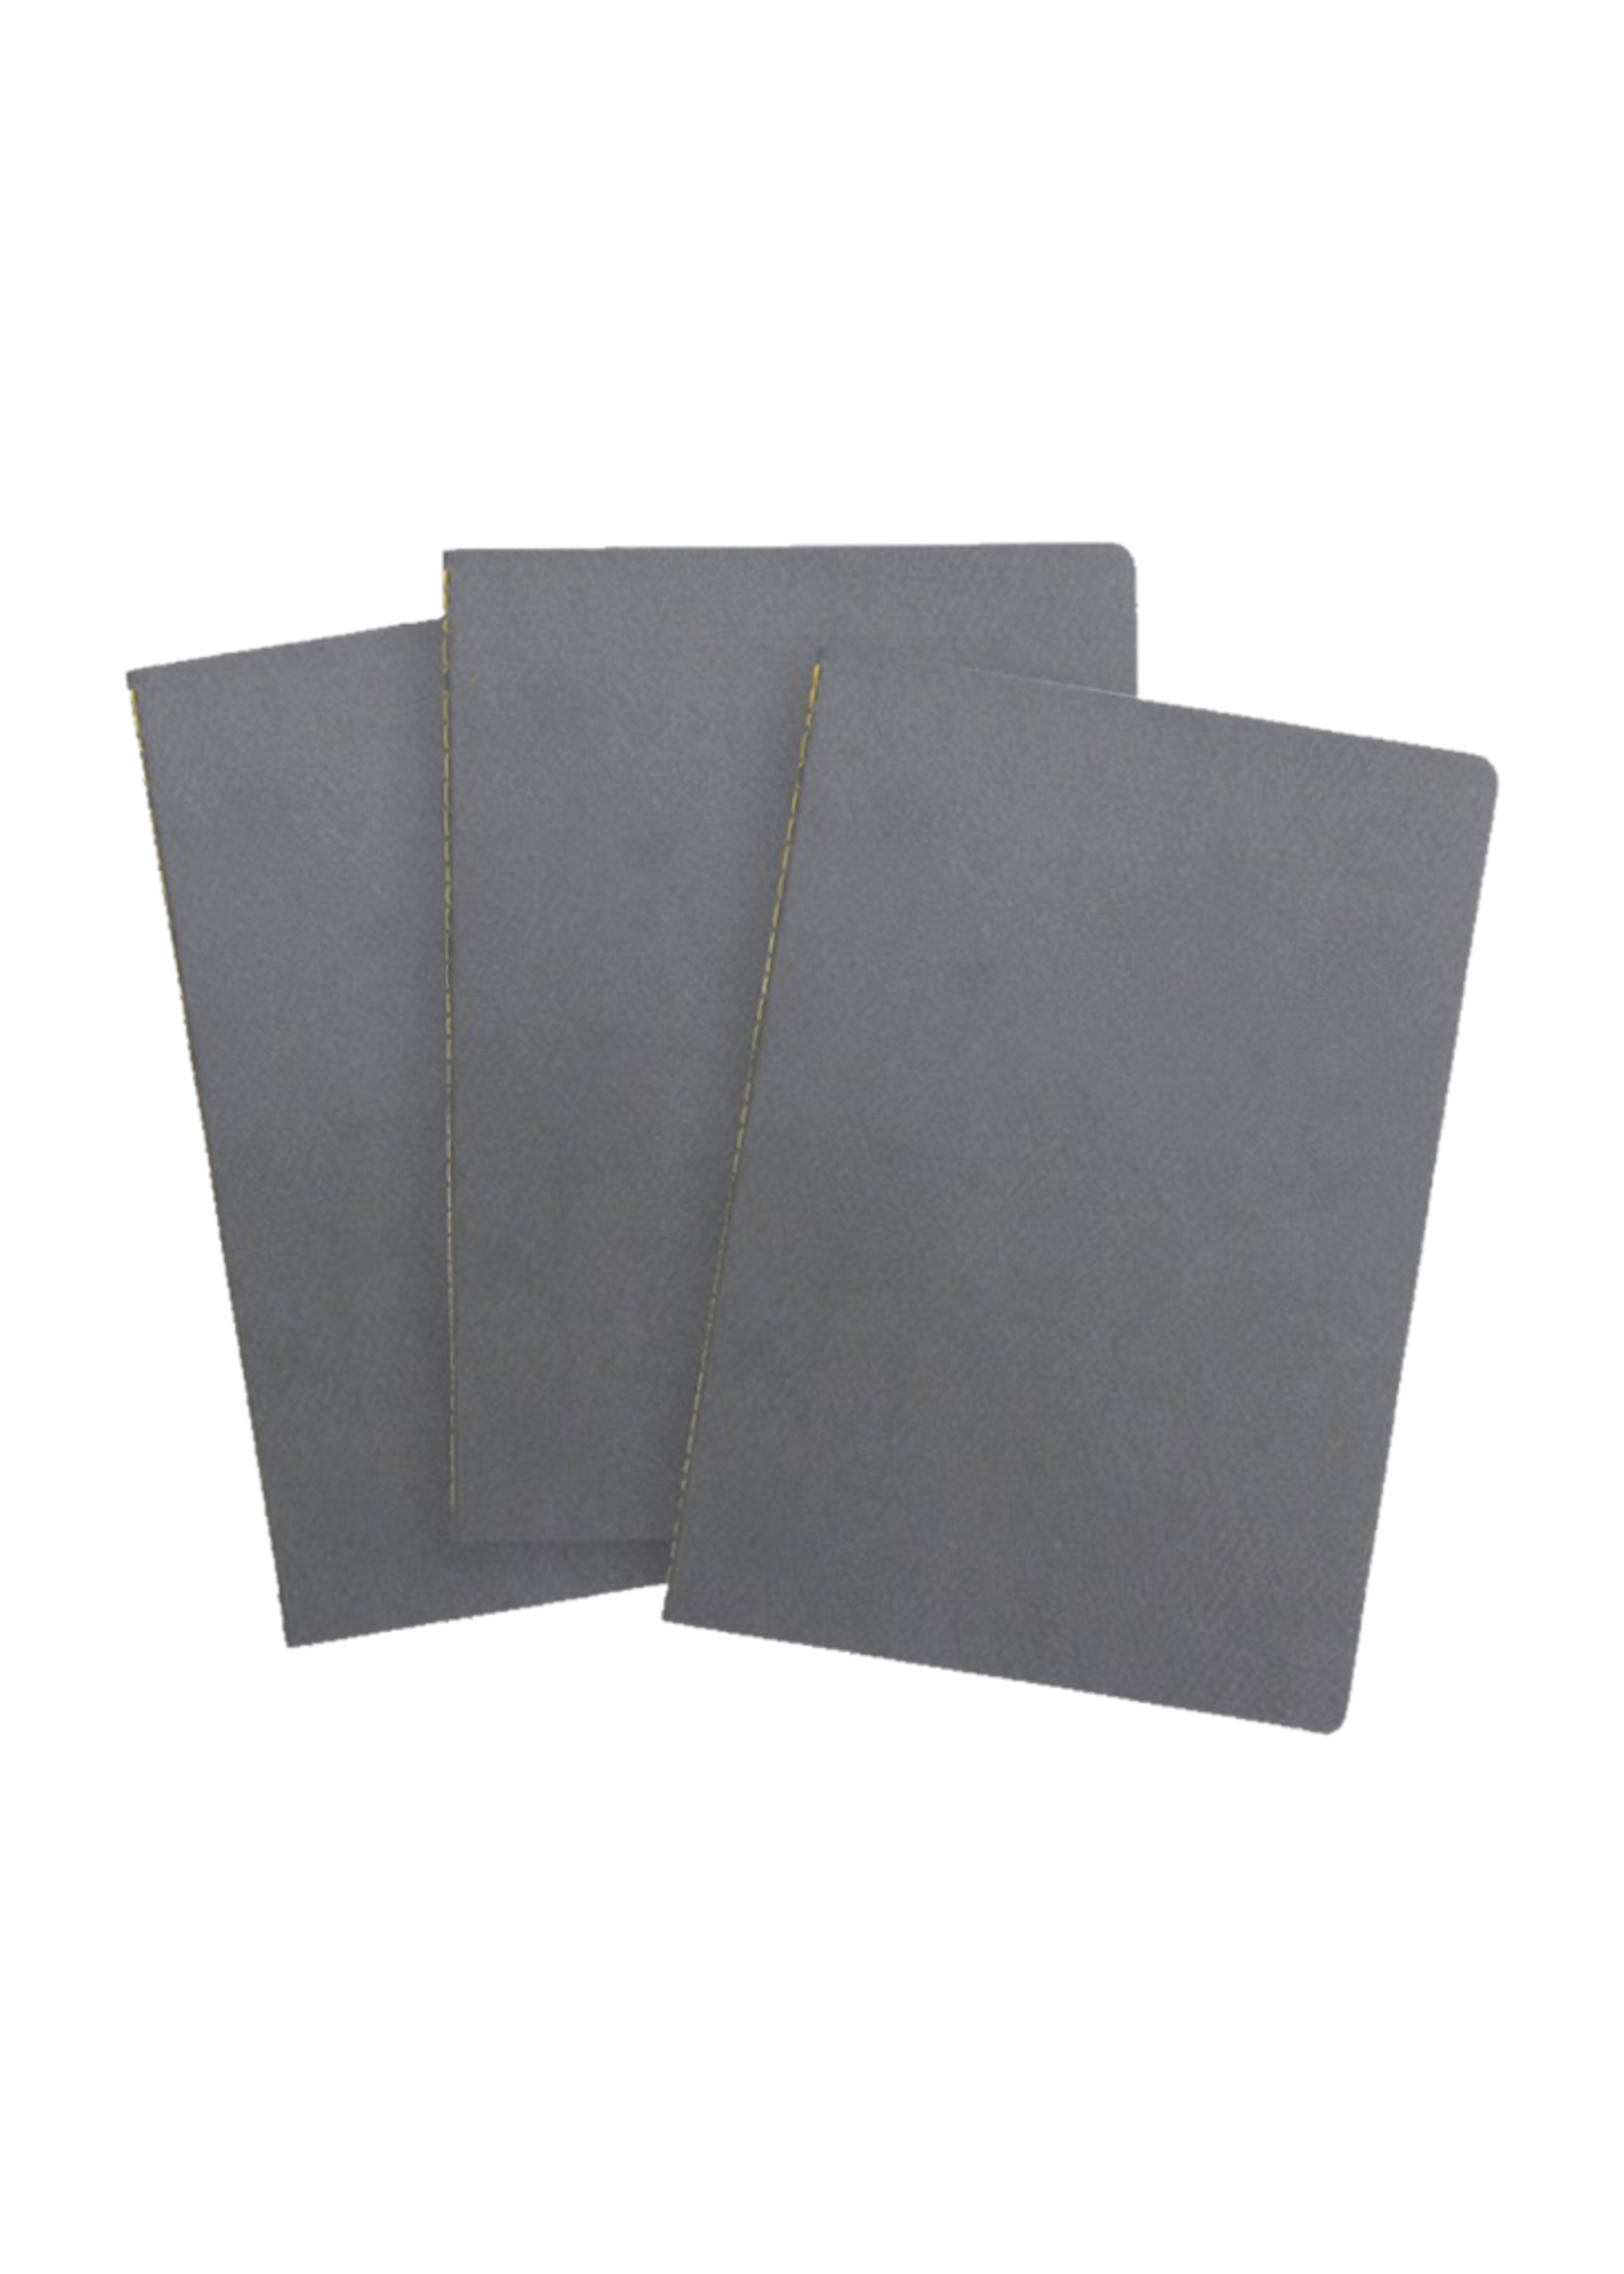 Baron Fig Vanguard Softcover Ruled Notebooks - Charcoal